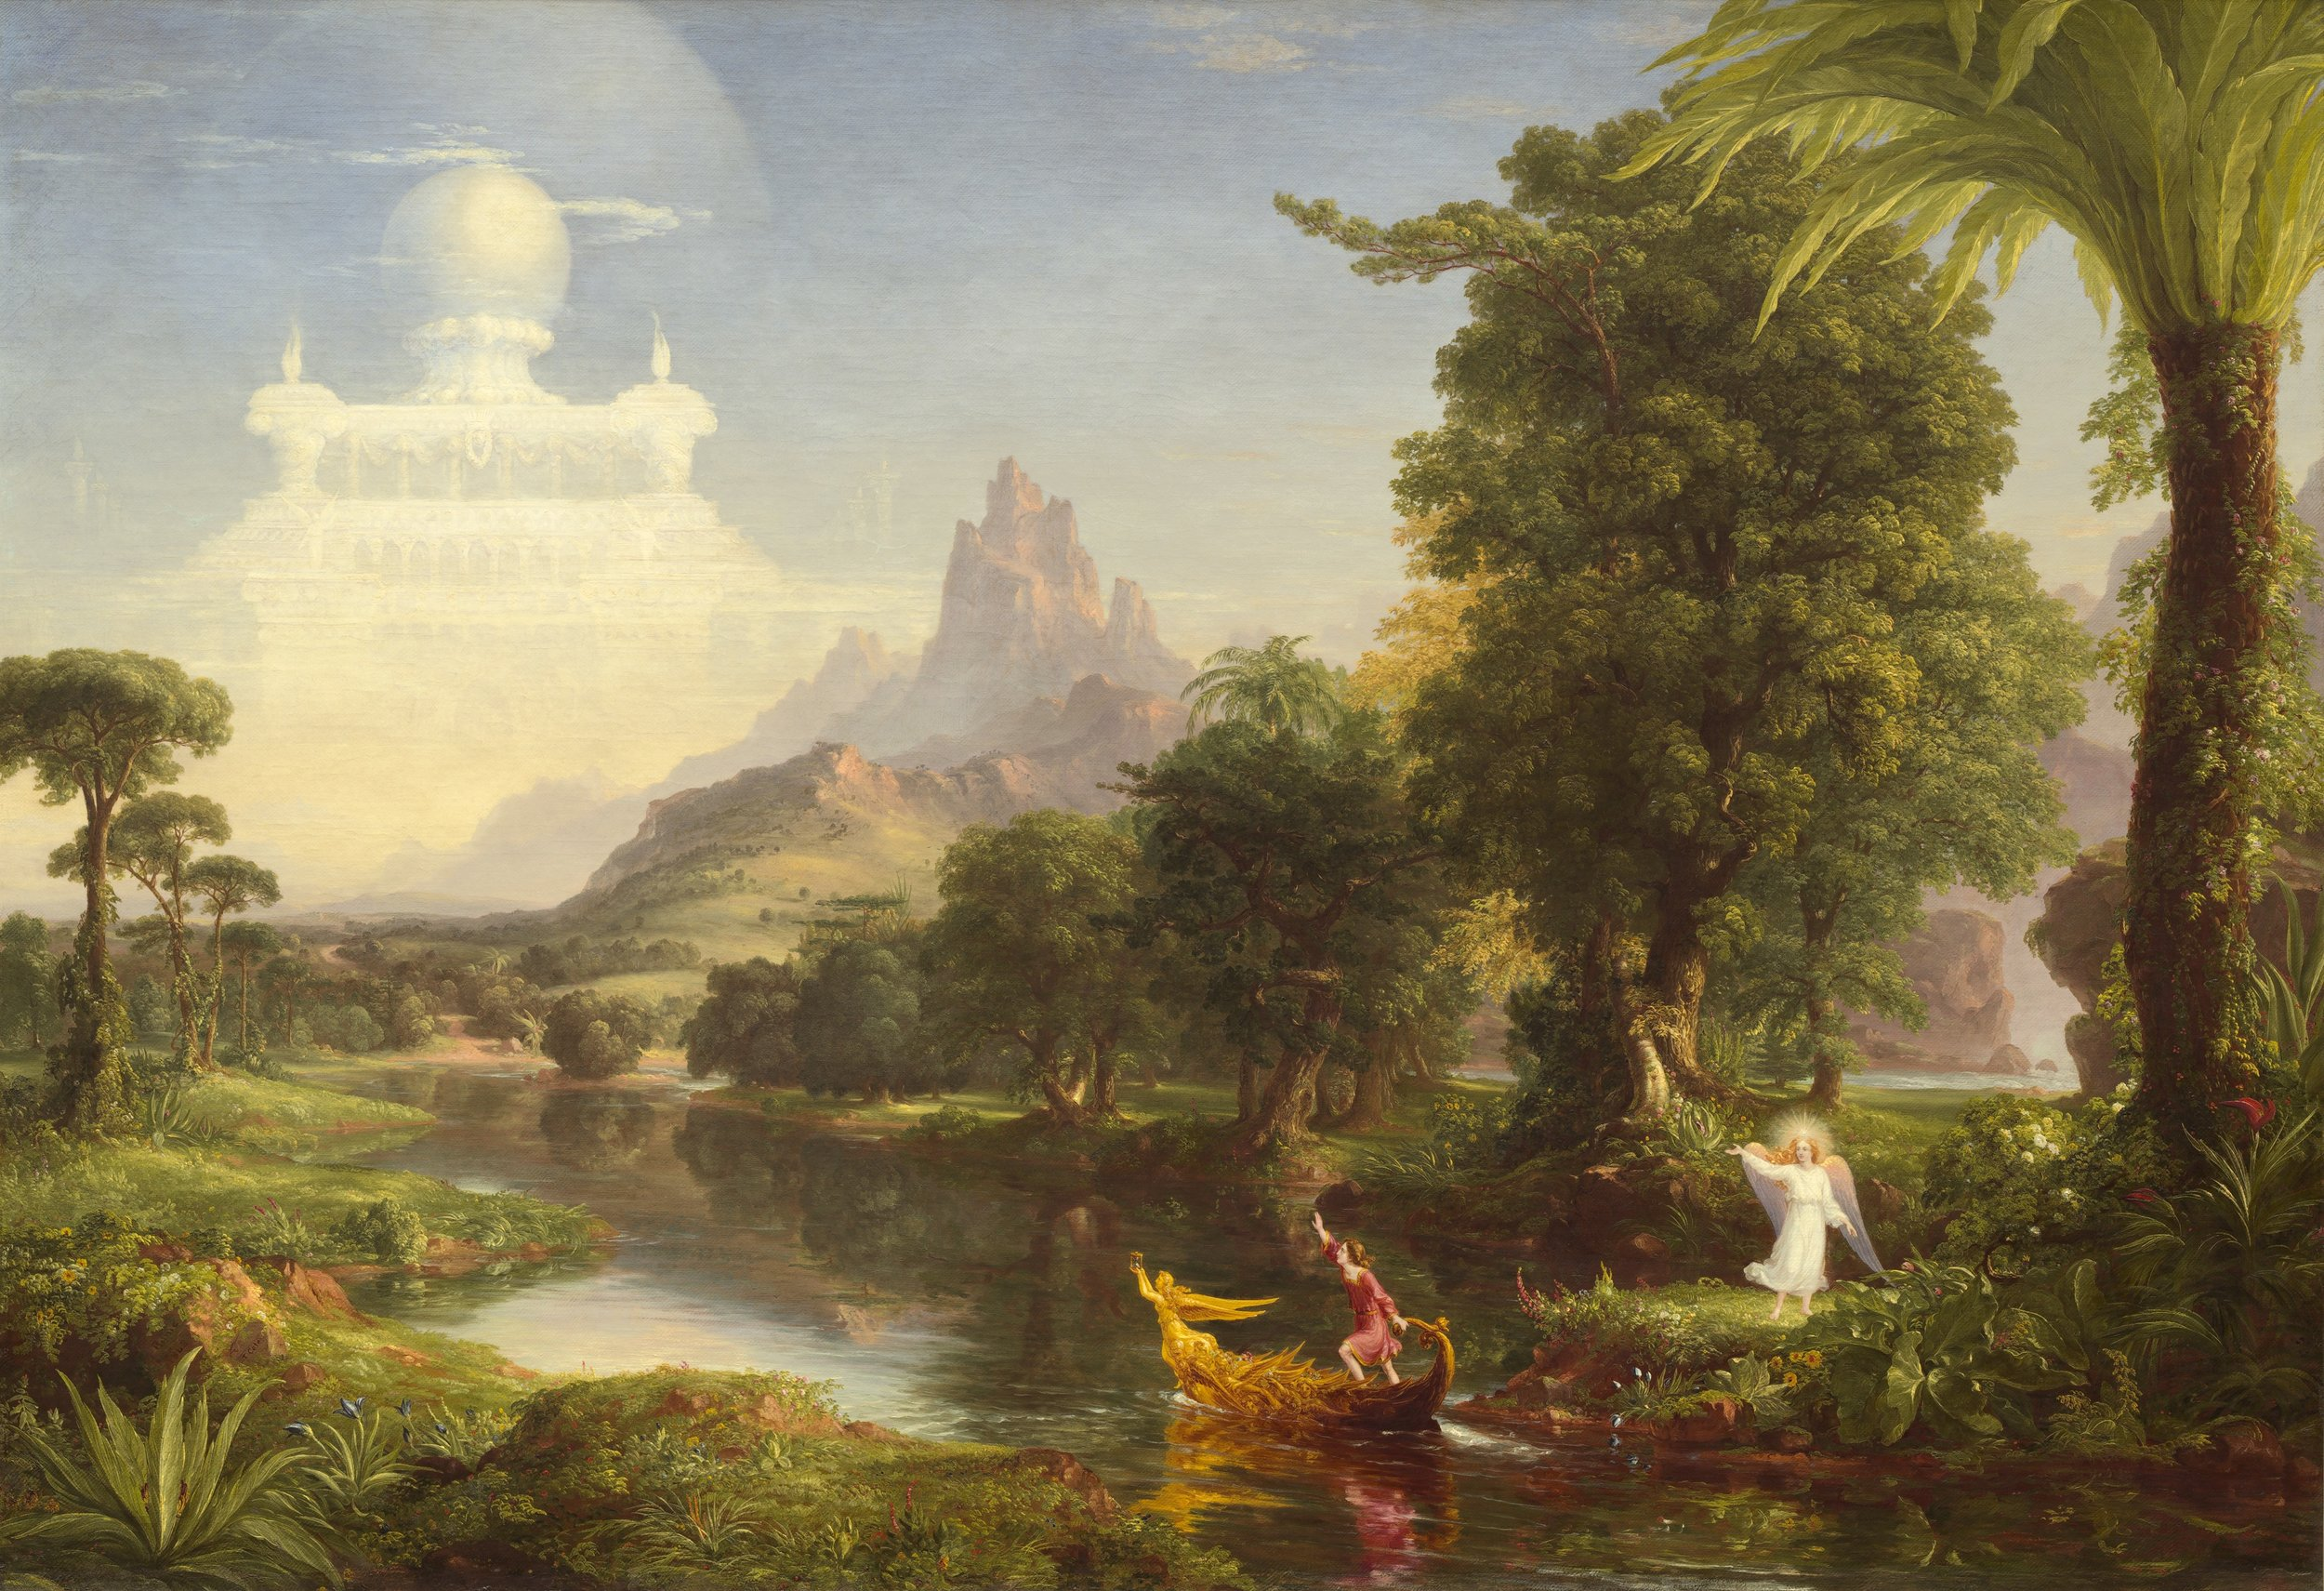 Thomas_Cole_-_The_Ages_of_Life_-_Youth_-_WGA05140.jpg